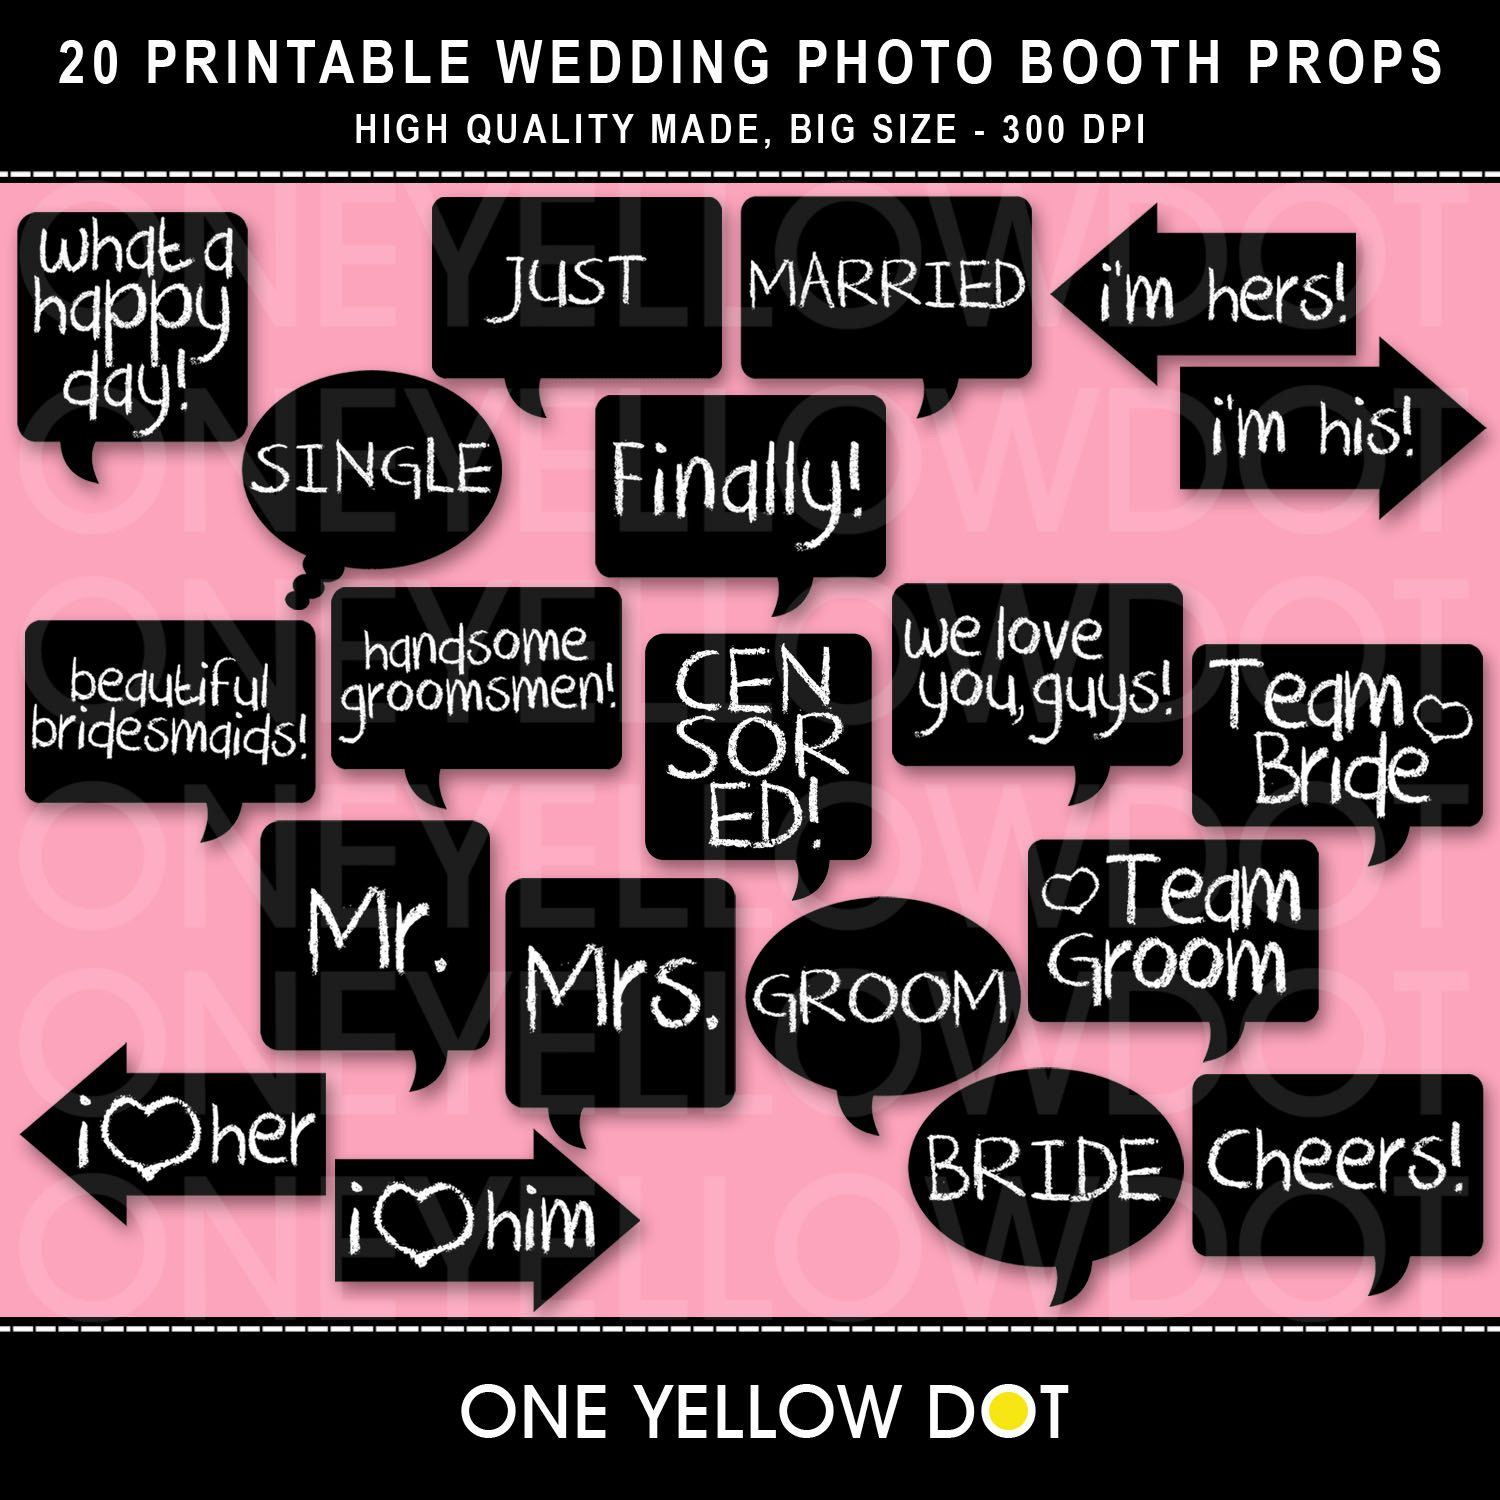 Instant download wedding photo booth props printable pdf instant download wedding photo booth props printable pdf personal and commercial use no credit required junglespirit Choice Image